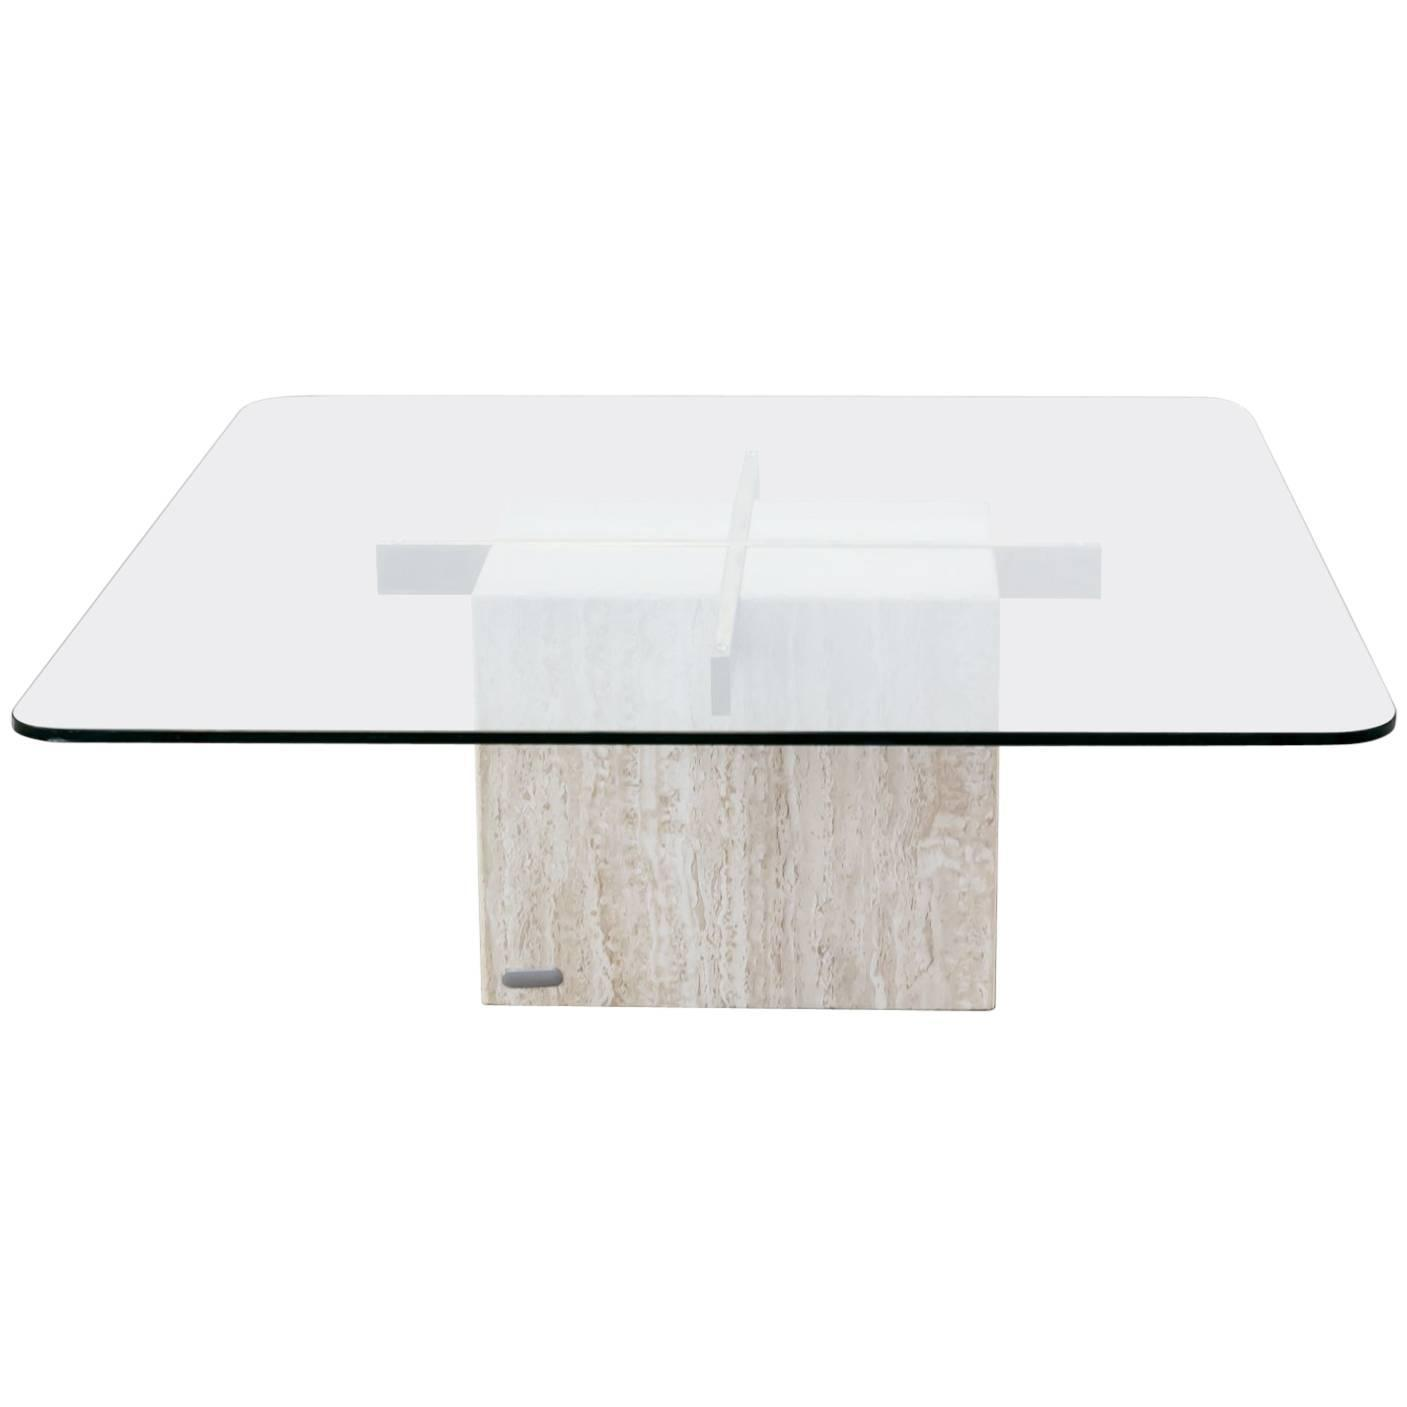 Marble Base Glass Top Coffee Table Rascalartsnyc